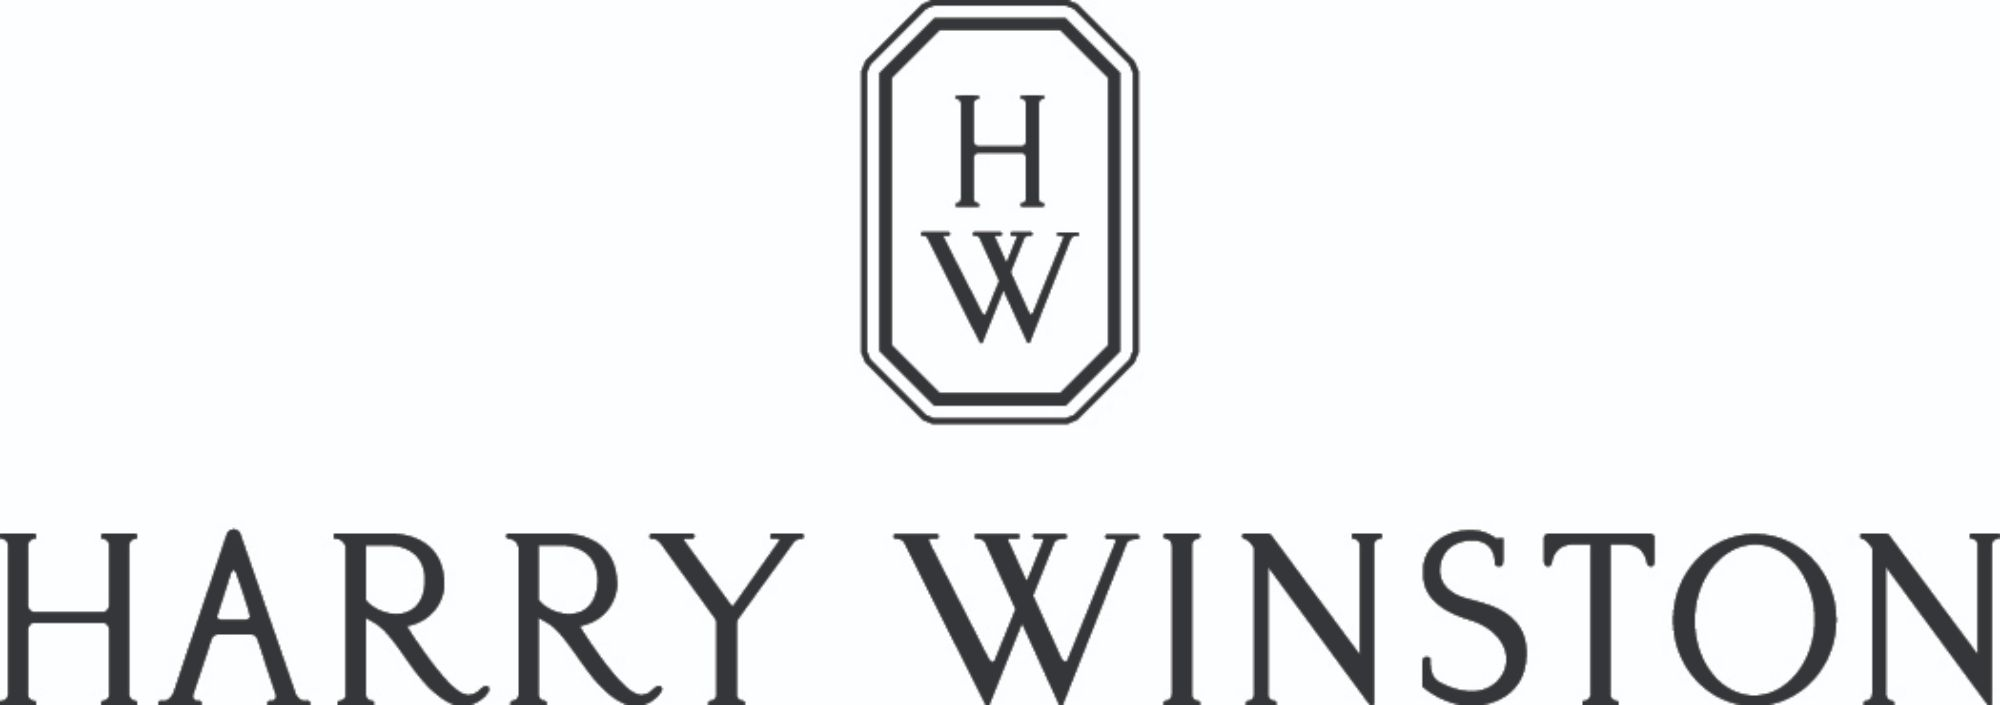 Harry Winston logo